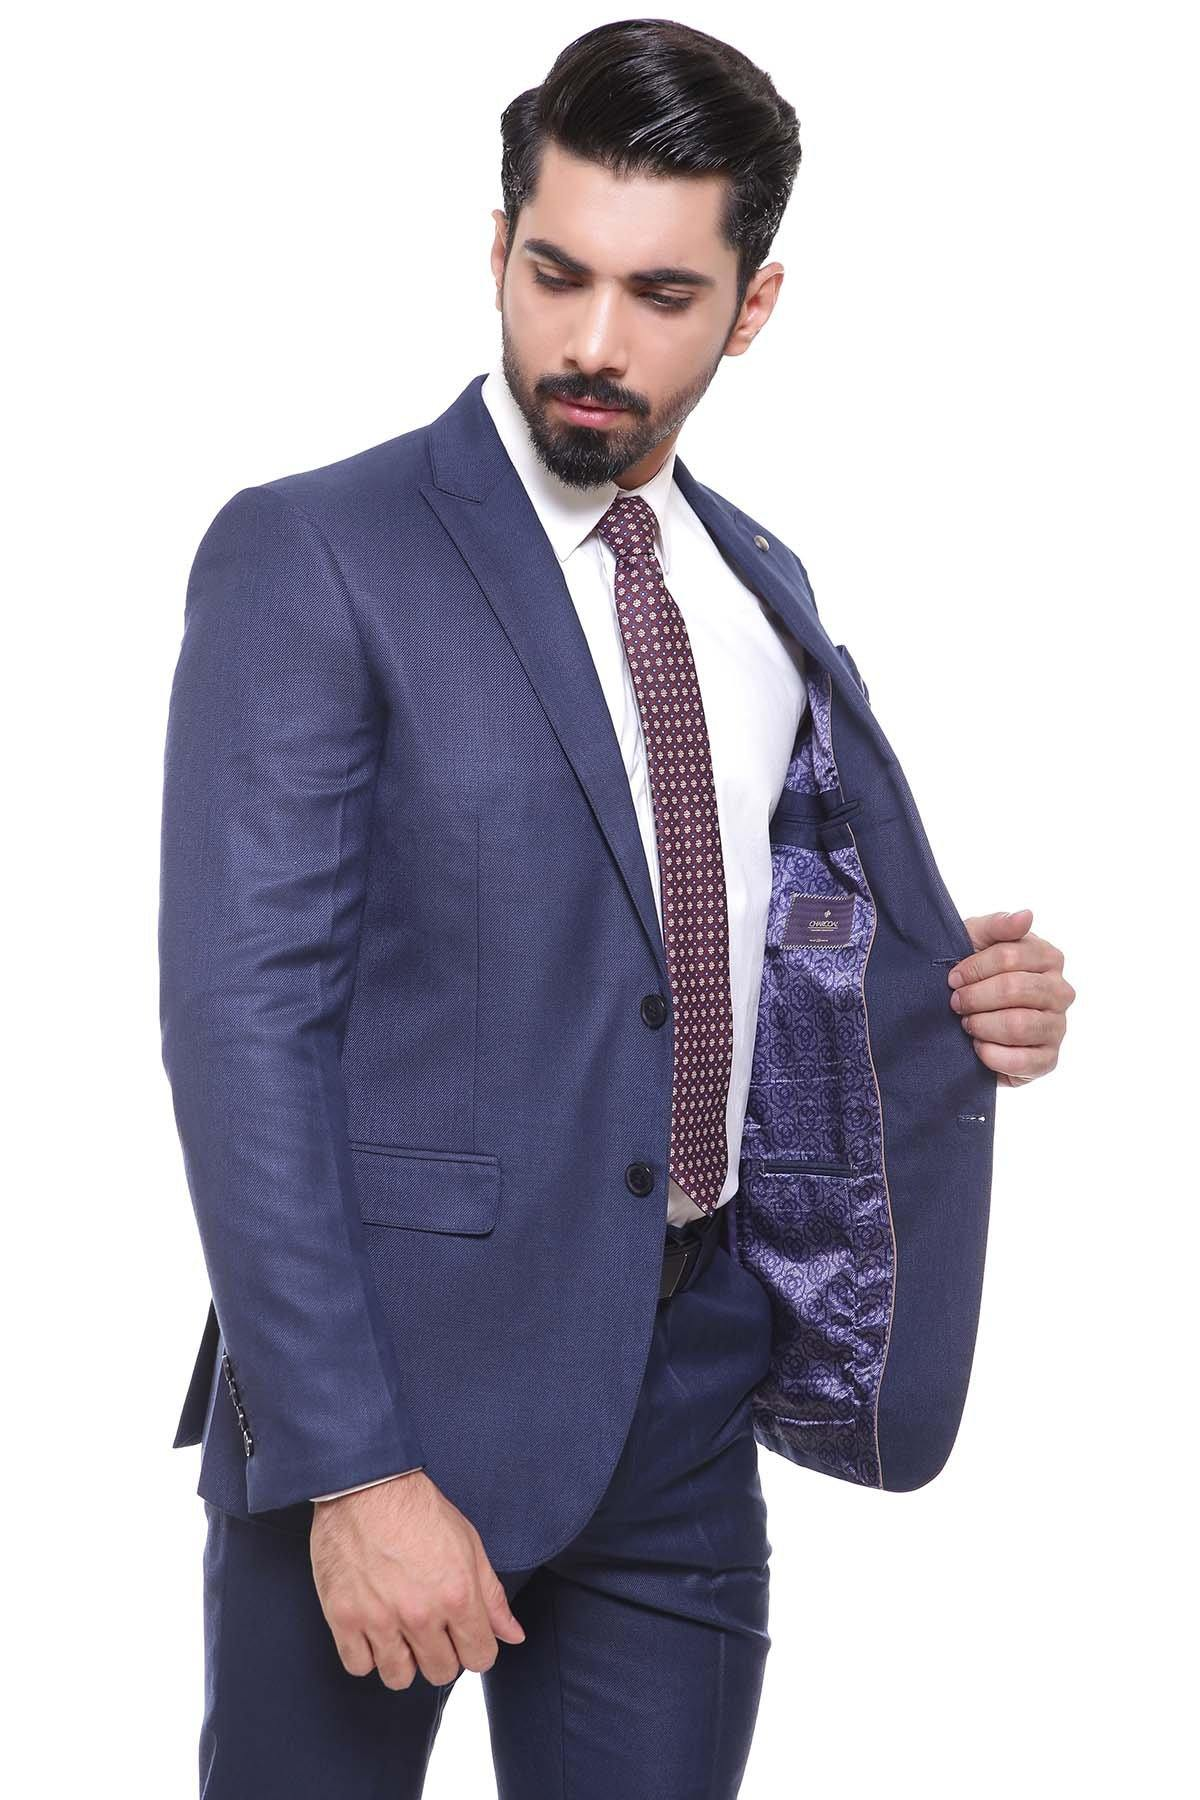 2 PIECE SUIT BLUE - Charcoal - FORMAL WEAR - Suiting